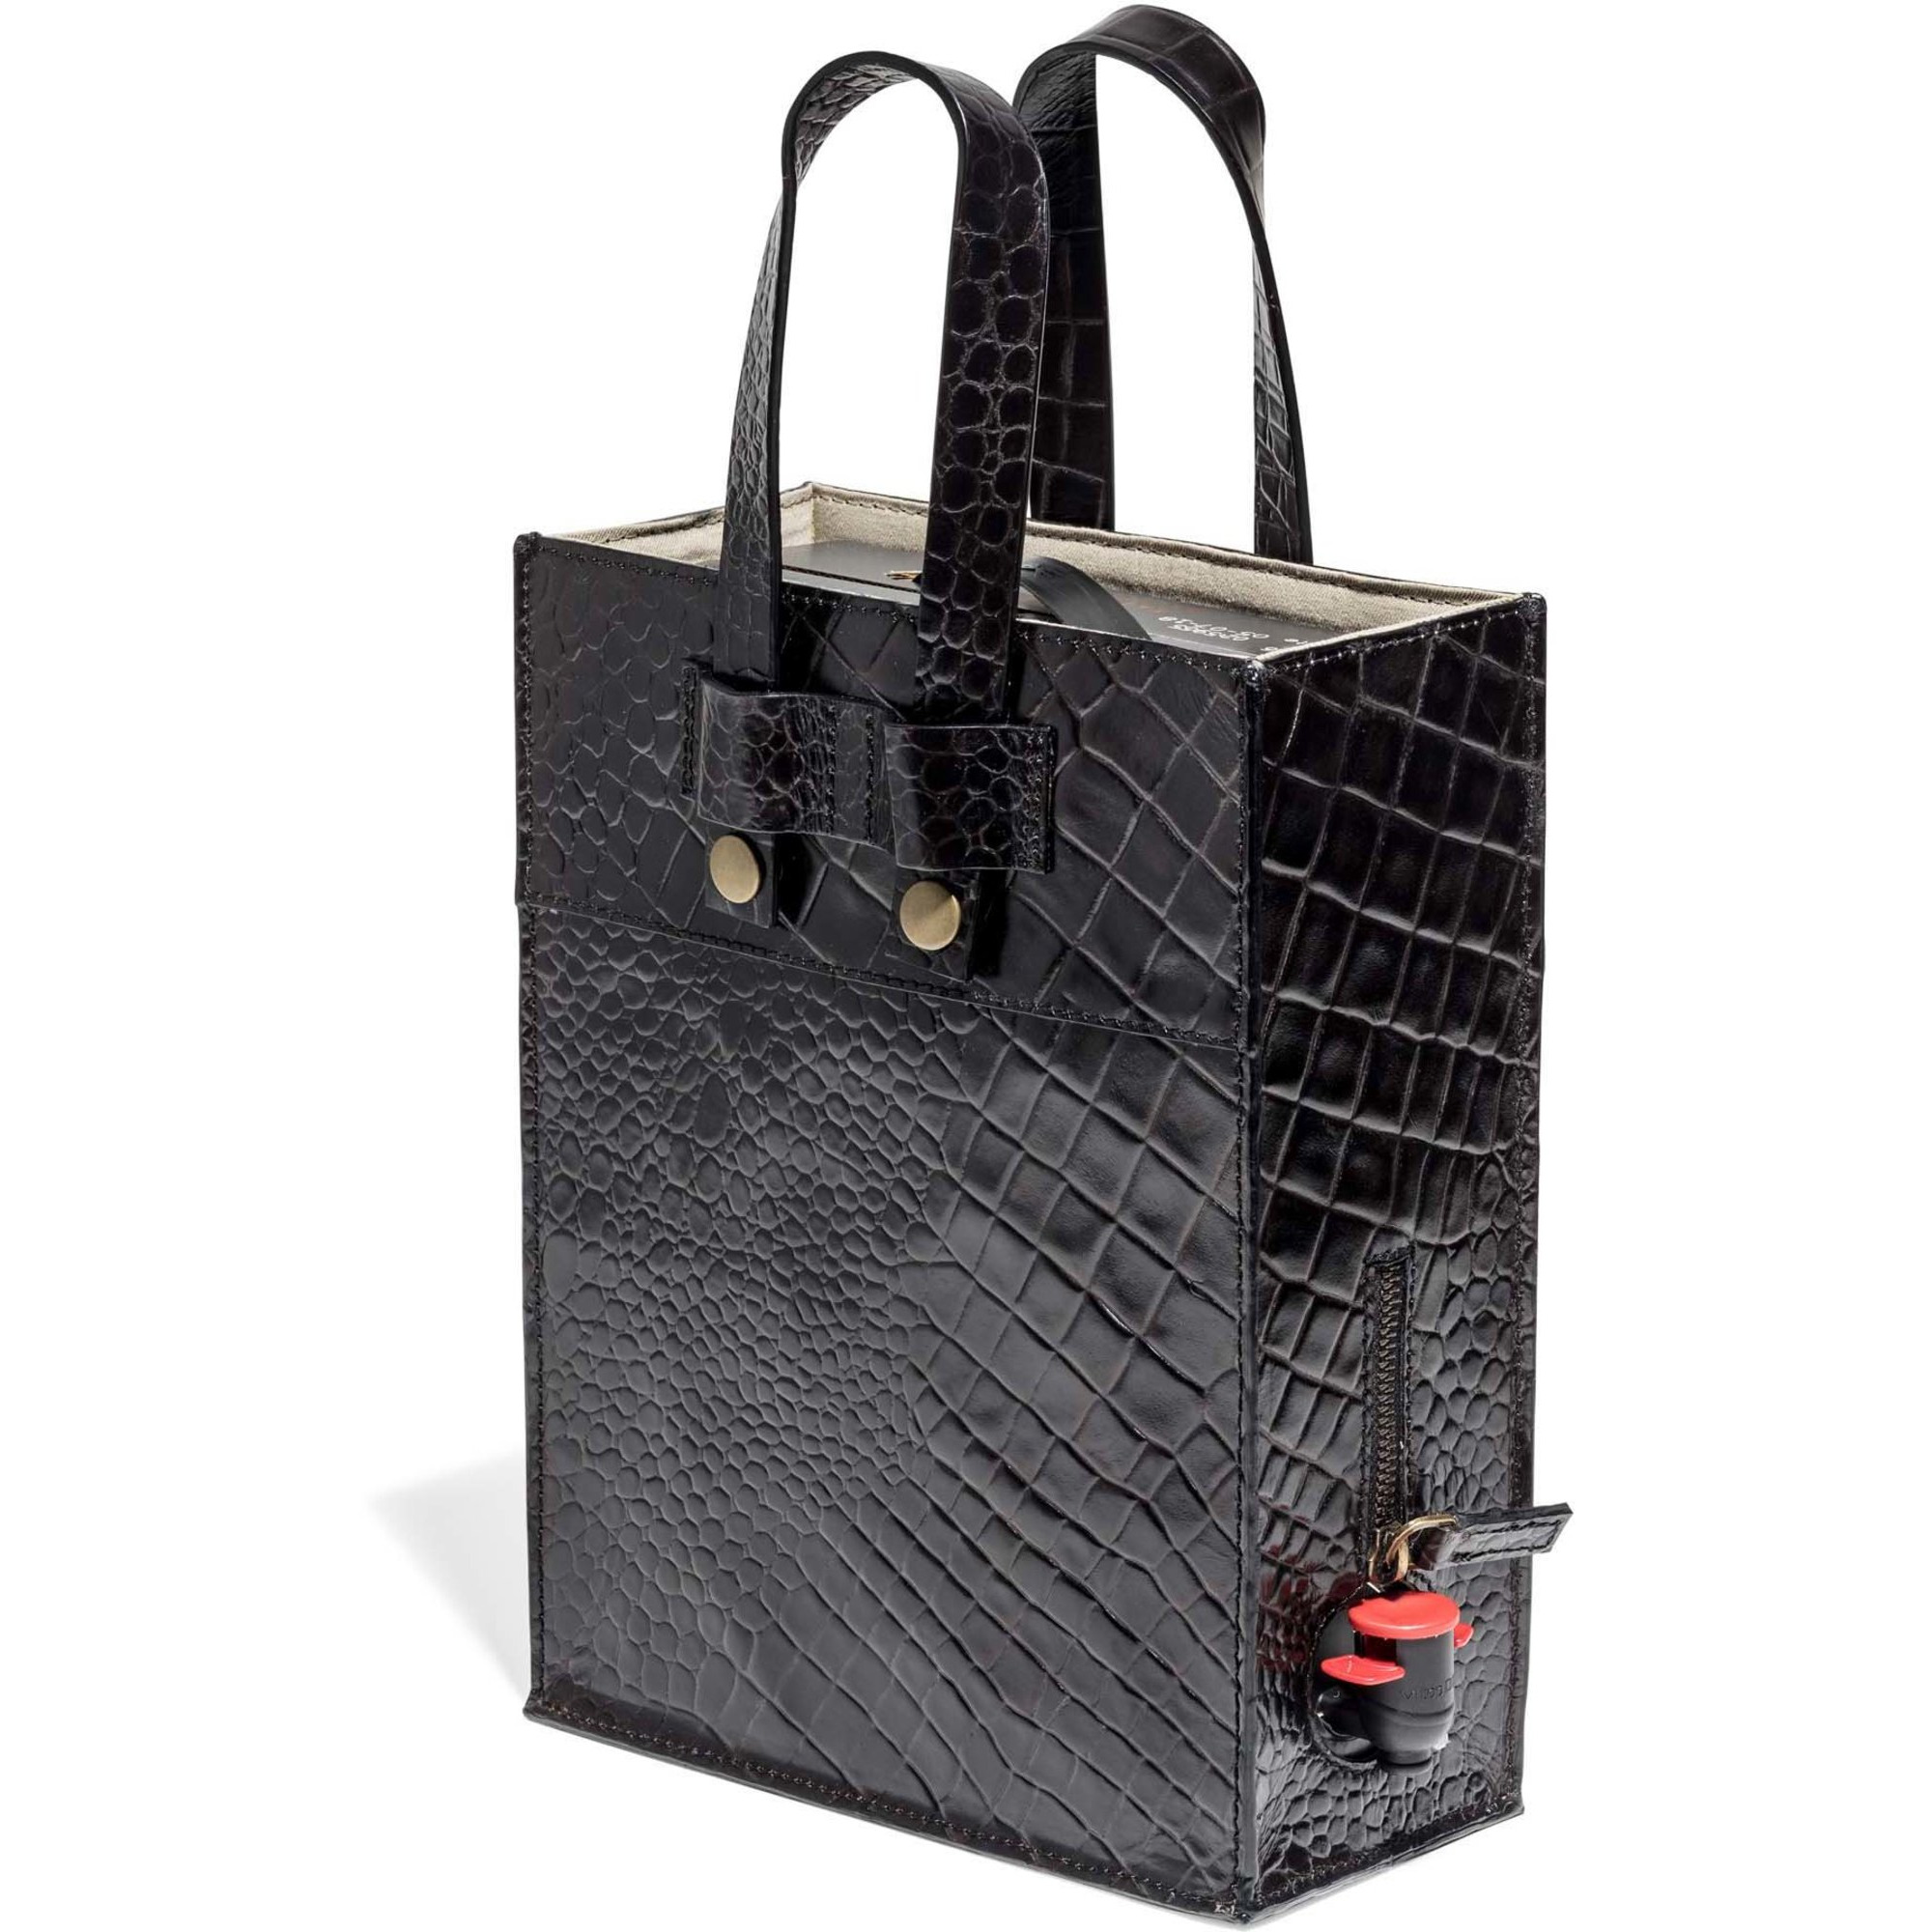 Top Drawer Bag in box i Croco mönster, black, 3 lit